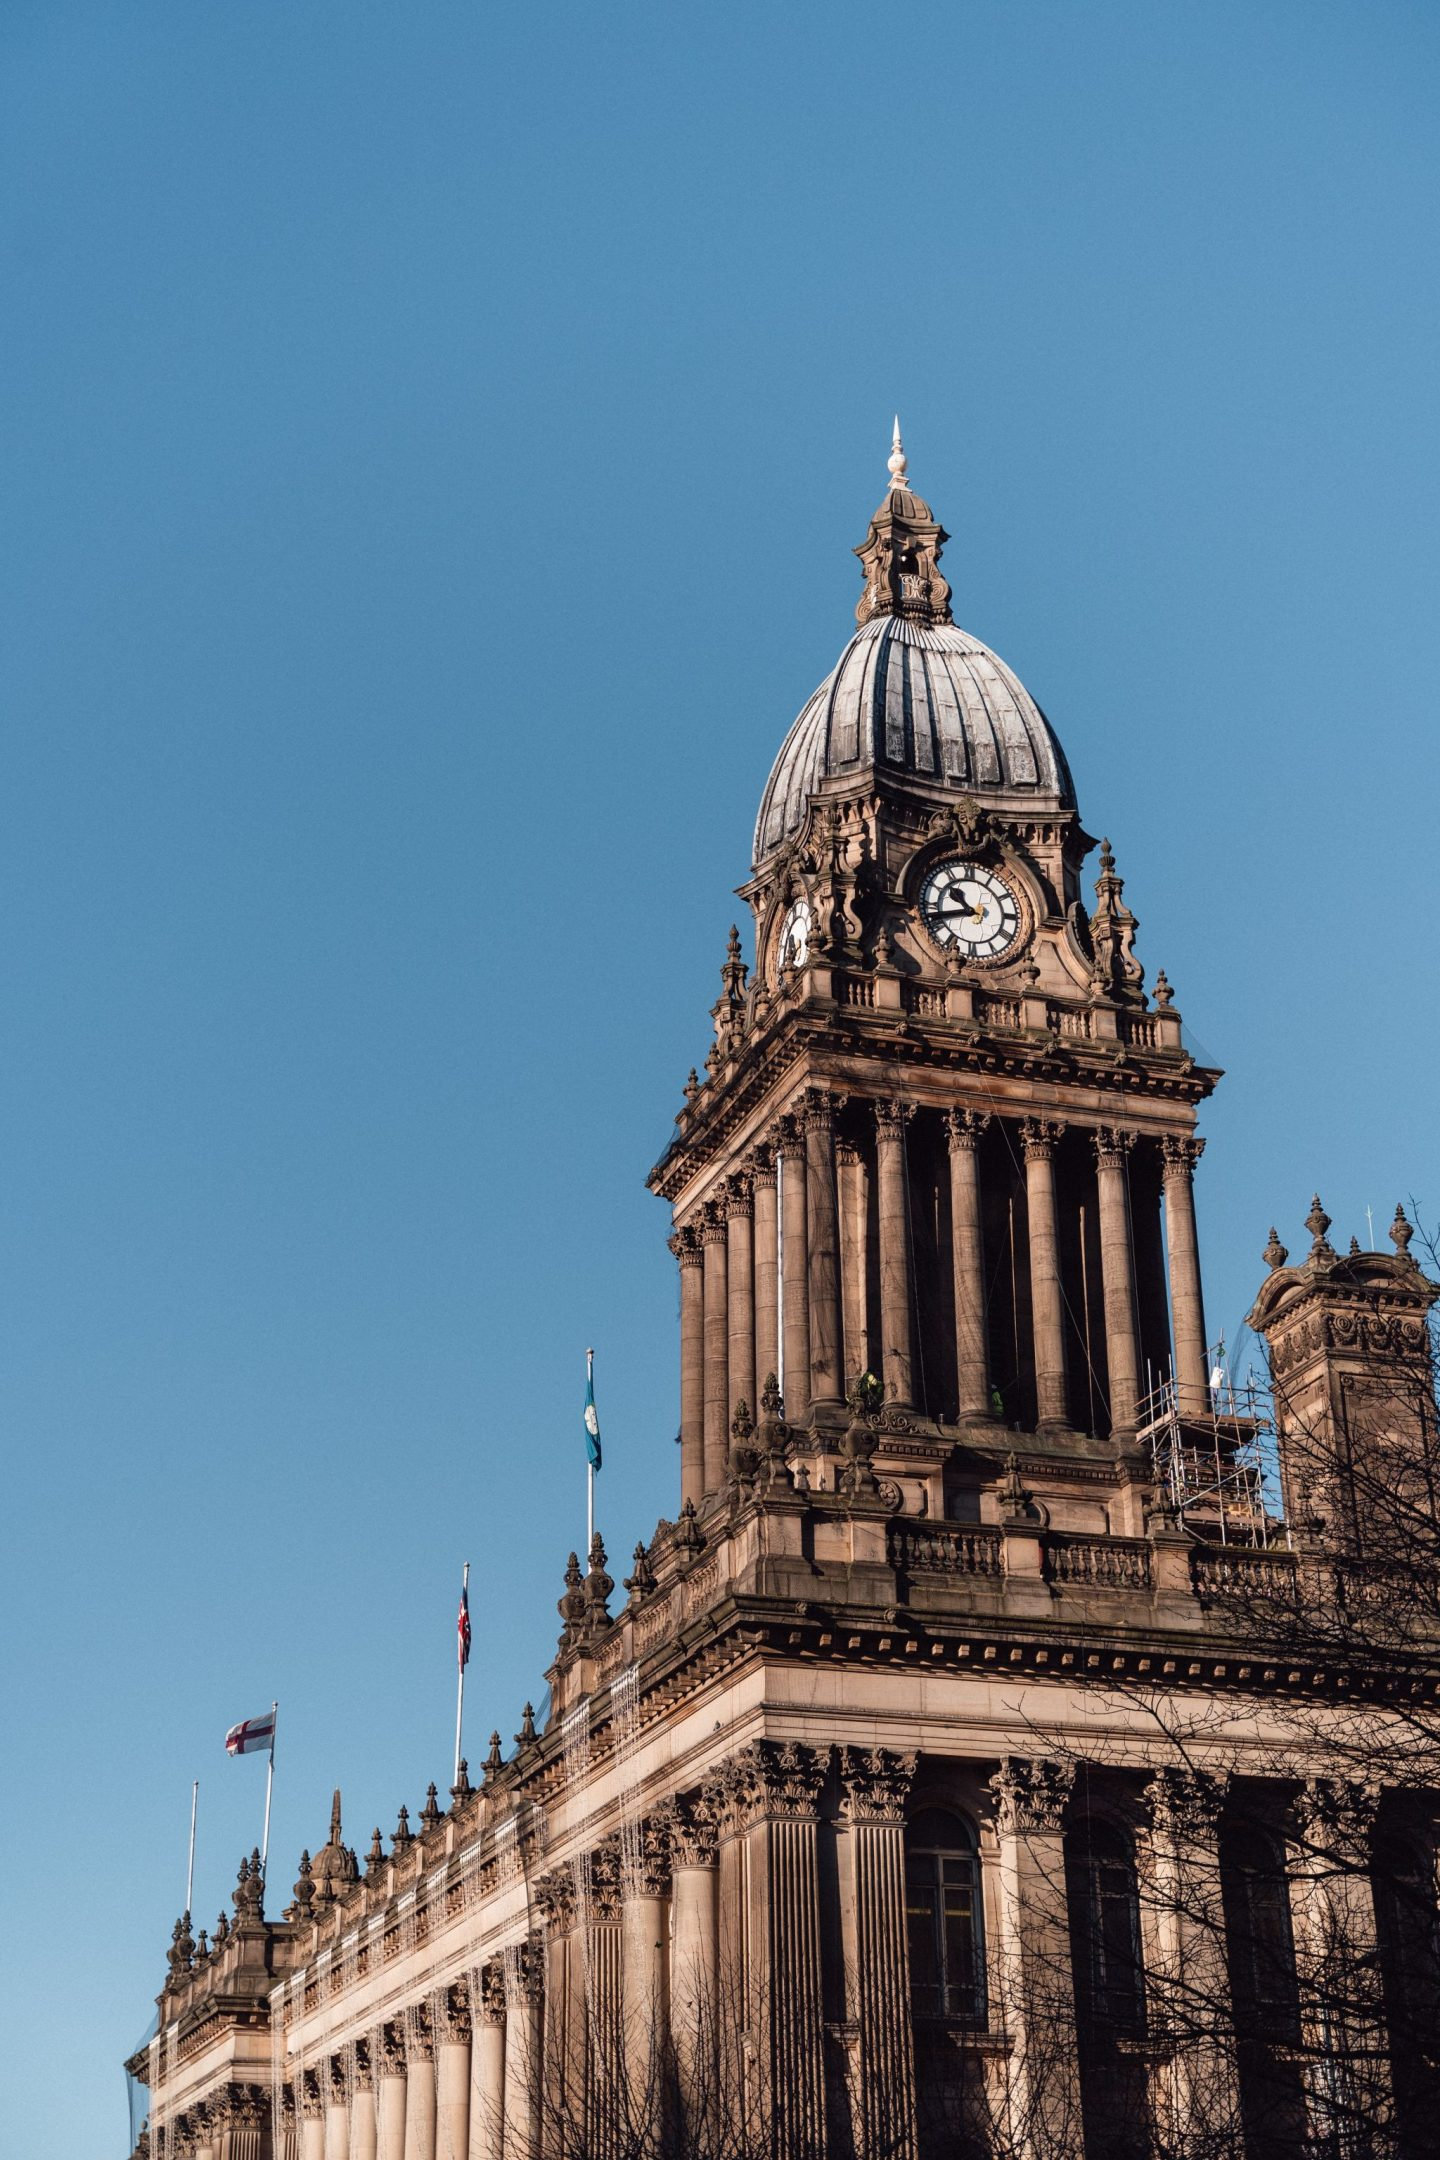 Leeds town hall, things to do in Leeds